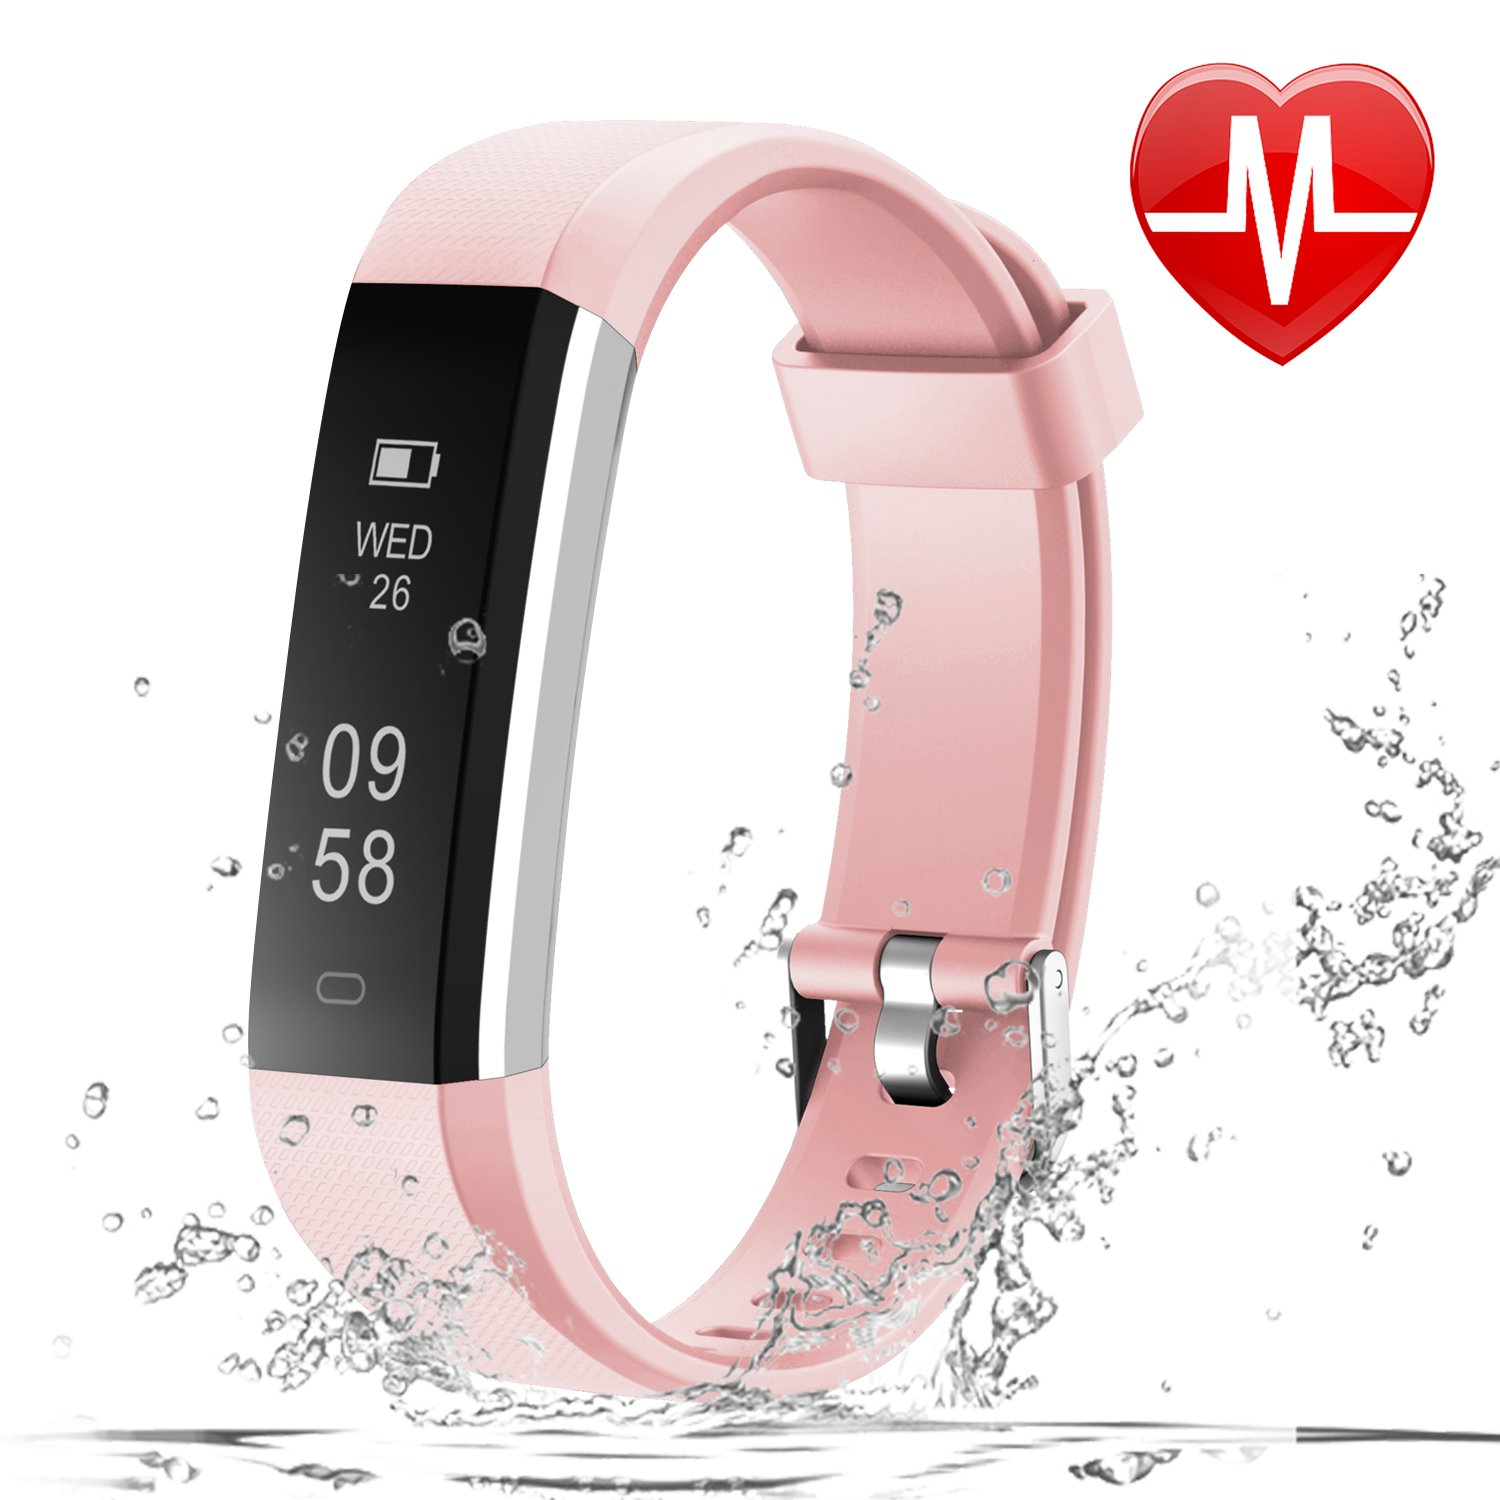 LETSCOM Fitness Tracker HR Fitness Watch with Heart Rate Monitor Slim Bluetooth Pedometer Watch Sleep Monitor Step Counter Calorie Counter for Kids Women and Men